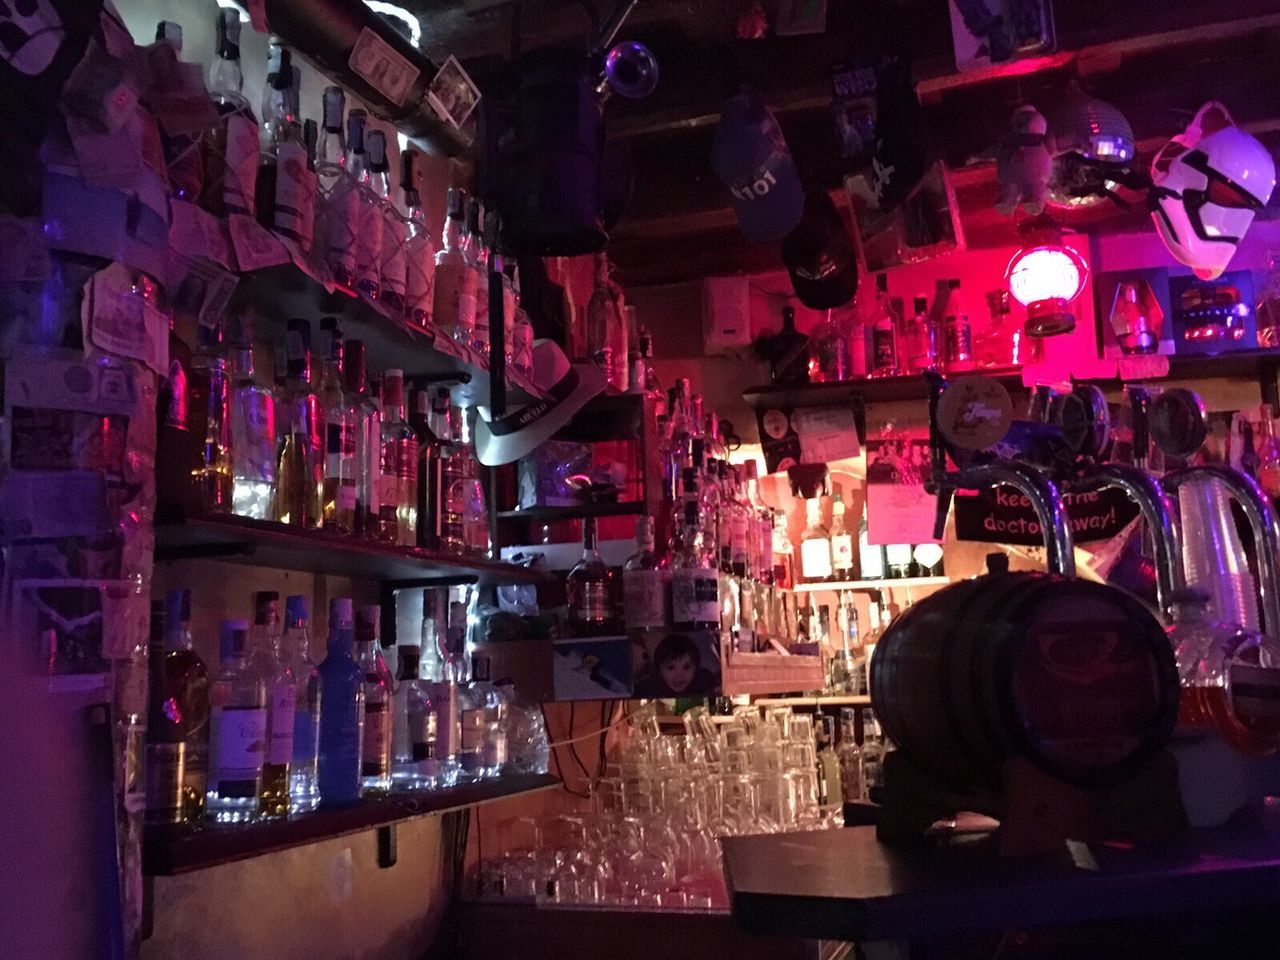 Roman Nights Rome Bar Neon Lights Fluorescent Bottle Rum Experiencing Places